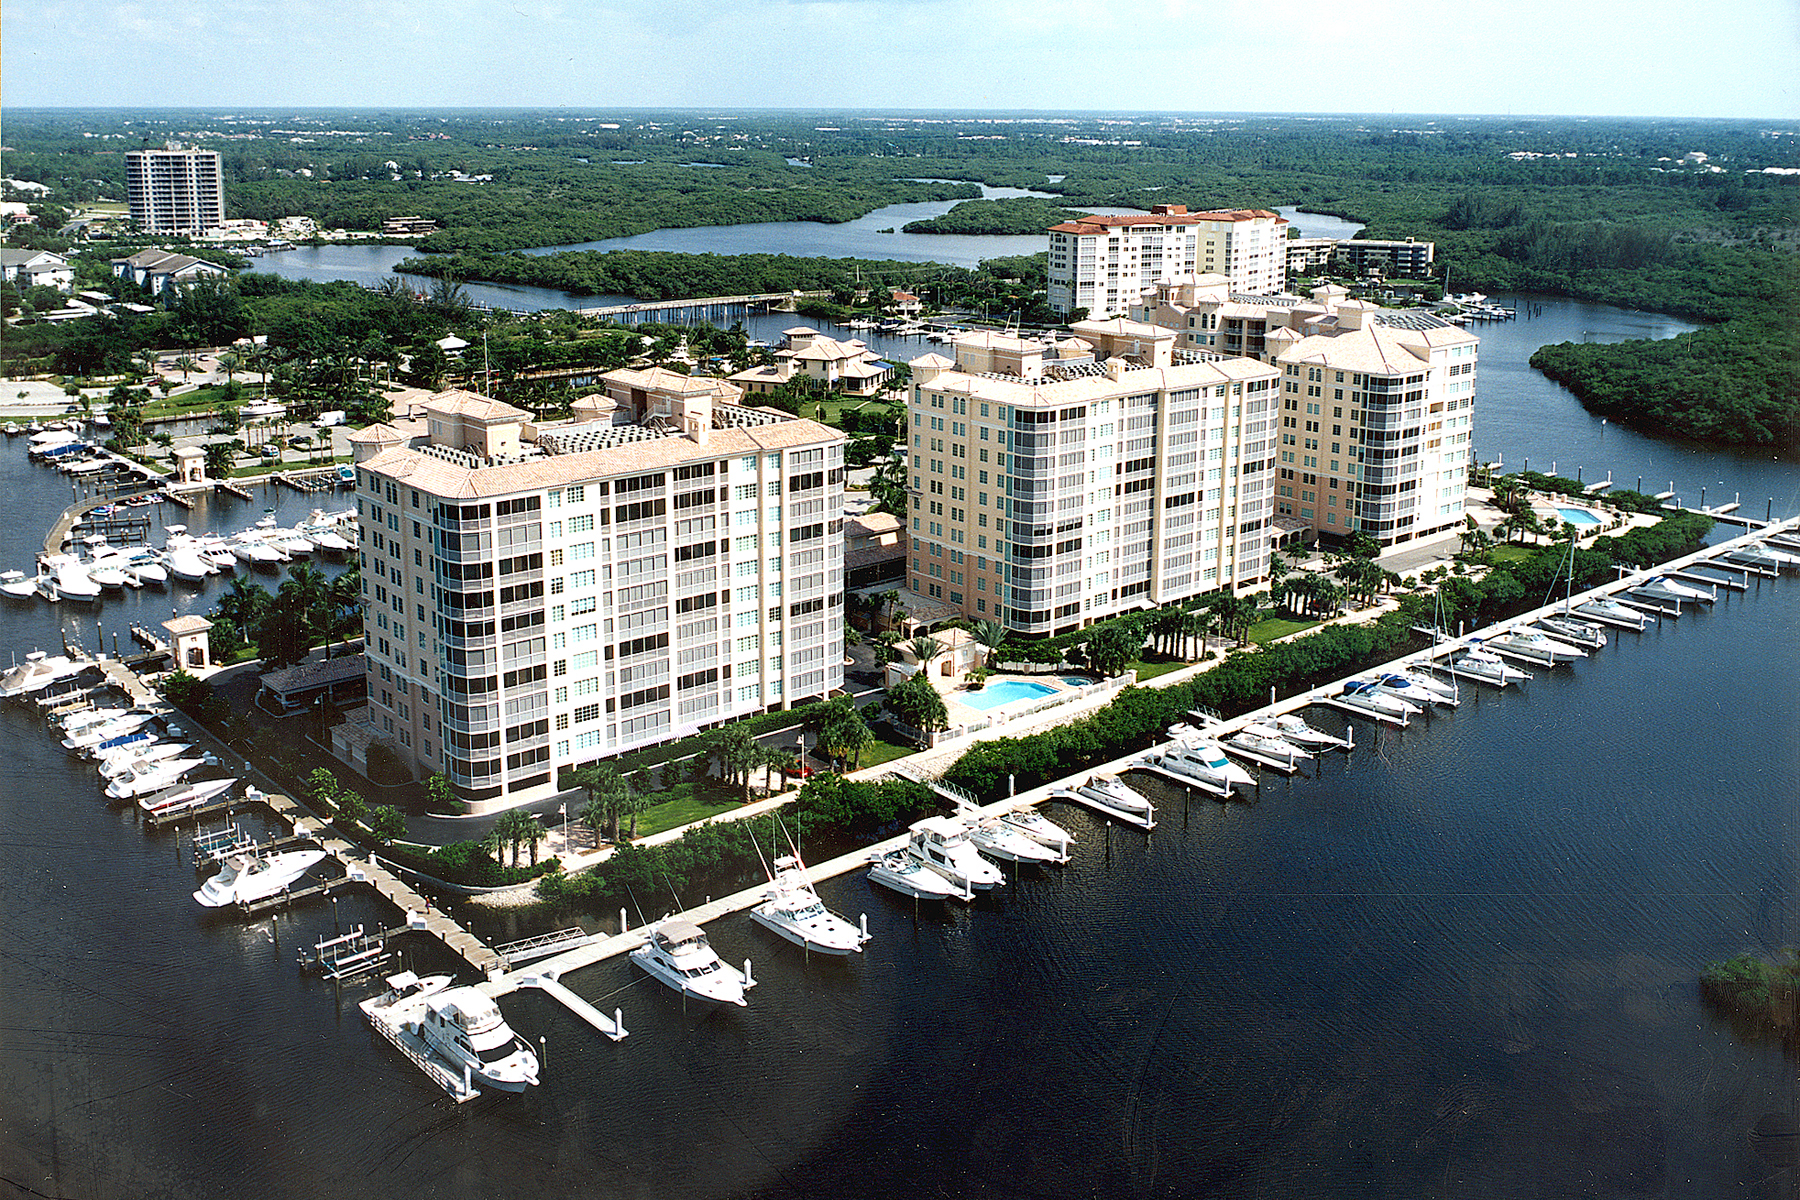 Condominium for Sale at PELICAN ISLE YACHT CLUB 445 Dockside Dr 404 Naples, Florida, 34110 United States